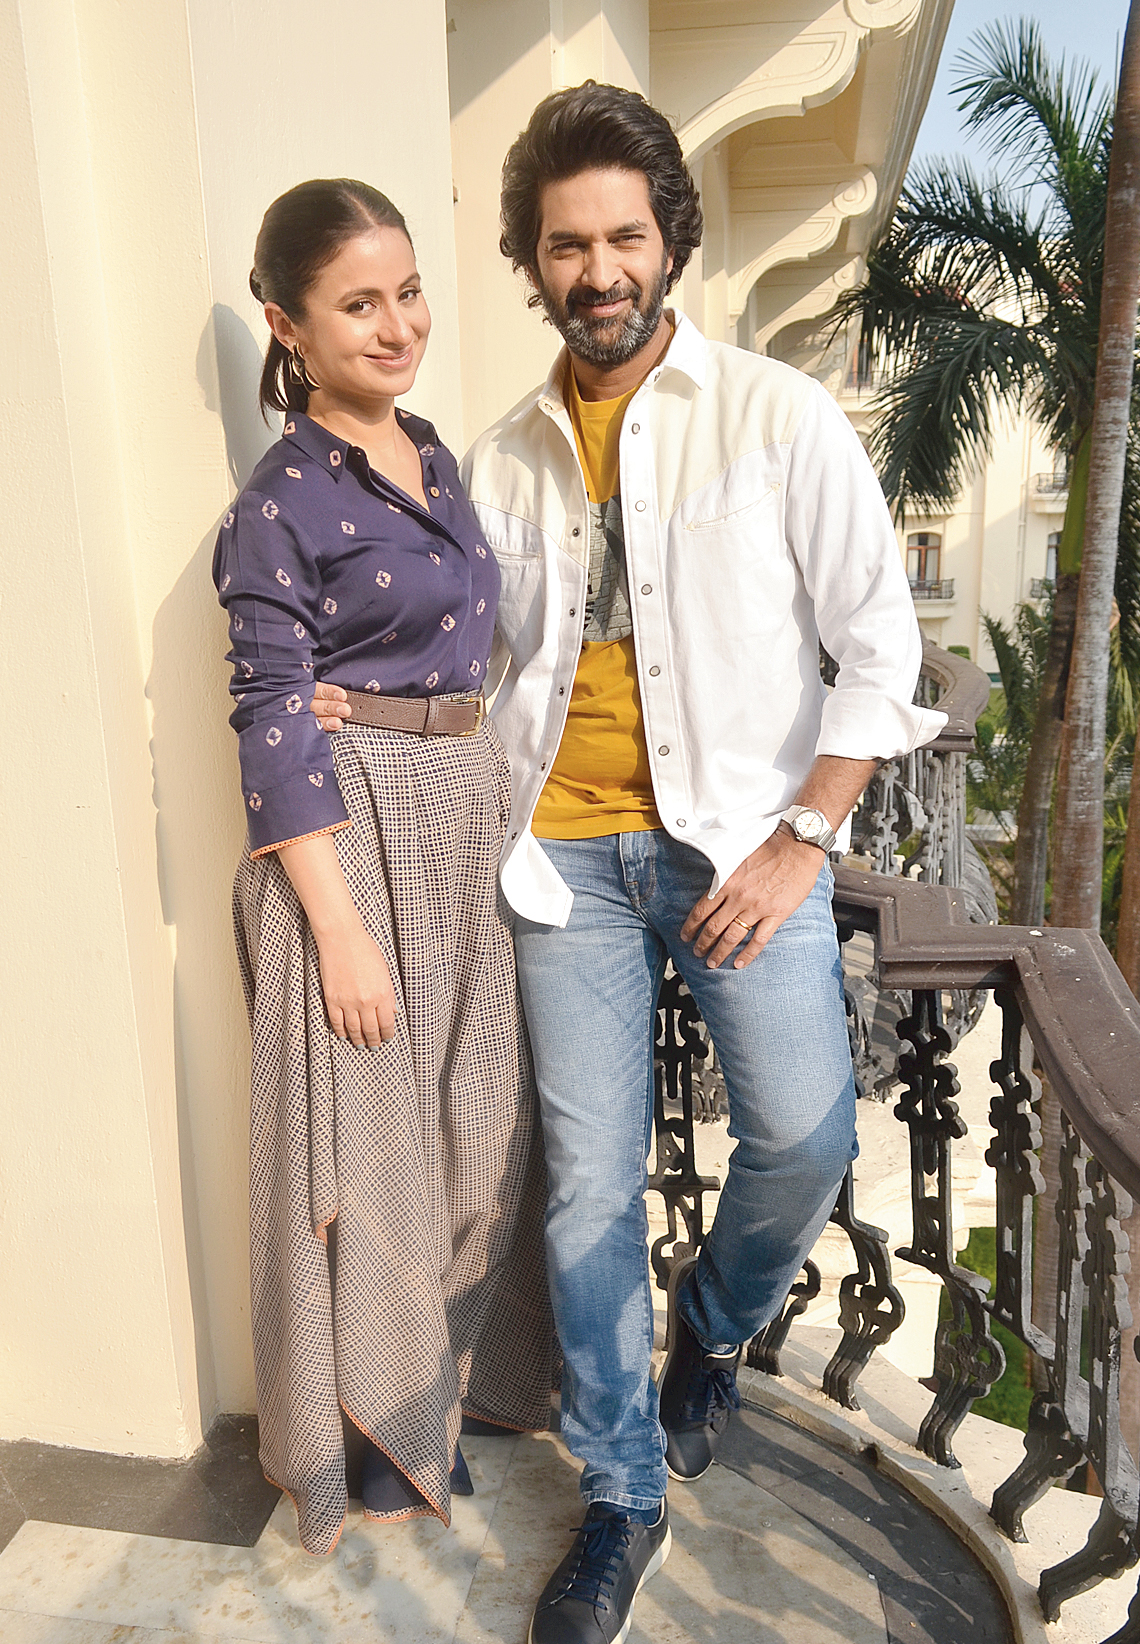 All smiles: Rasika with her Out of Love co-star Purab Kohli during the Calcutta promotions of the Hotstar show at The Oberoi Grand.